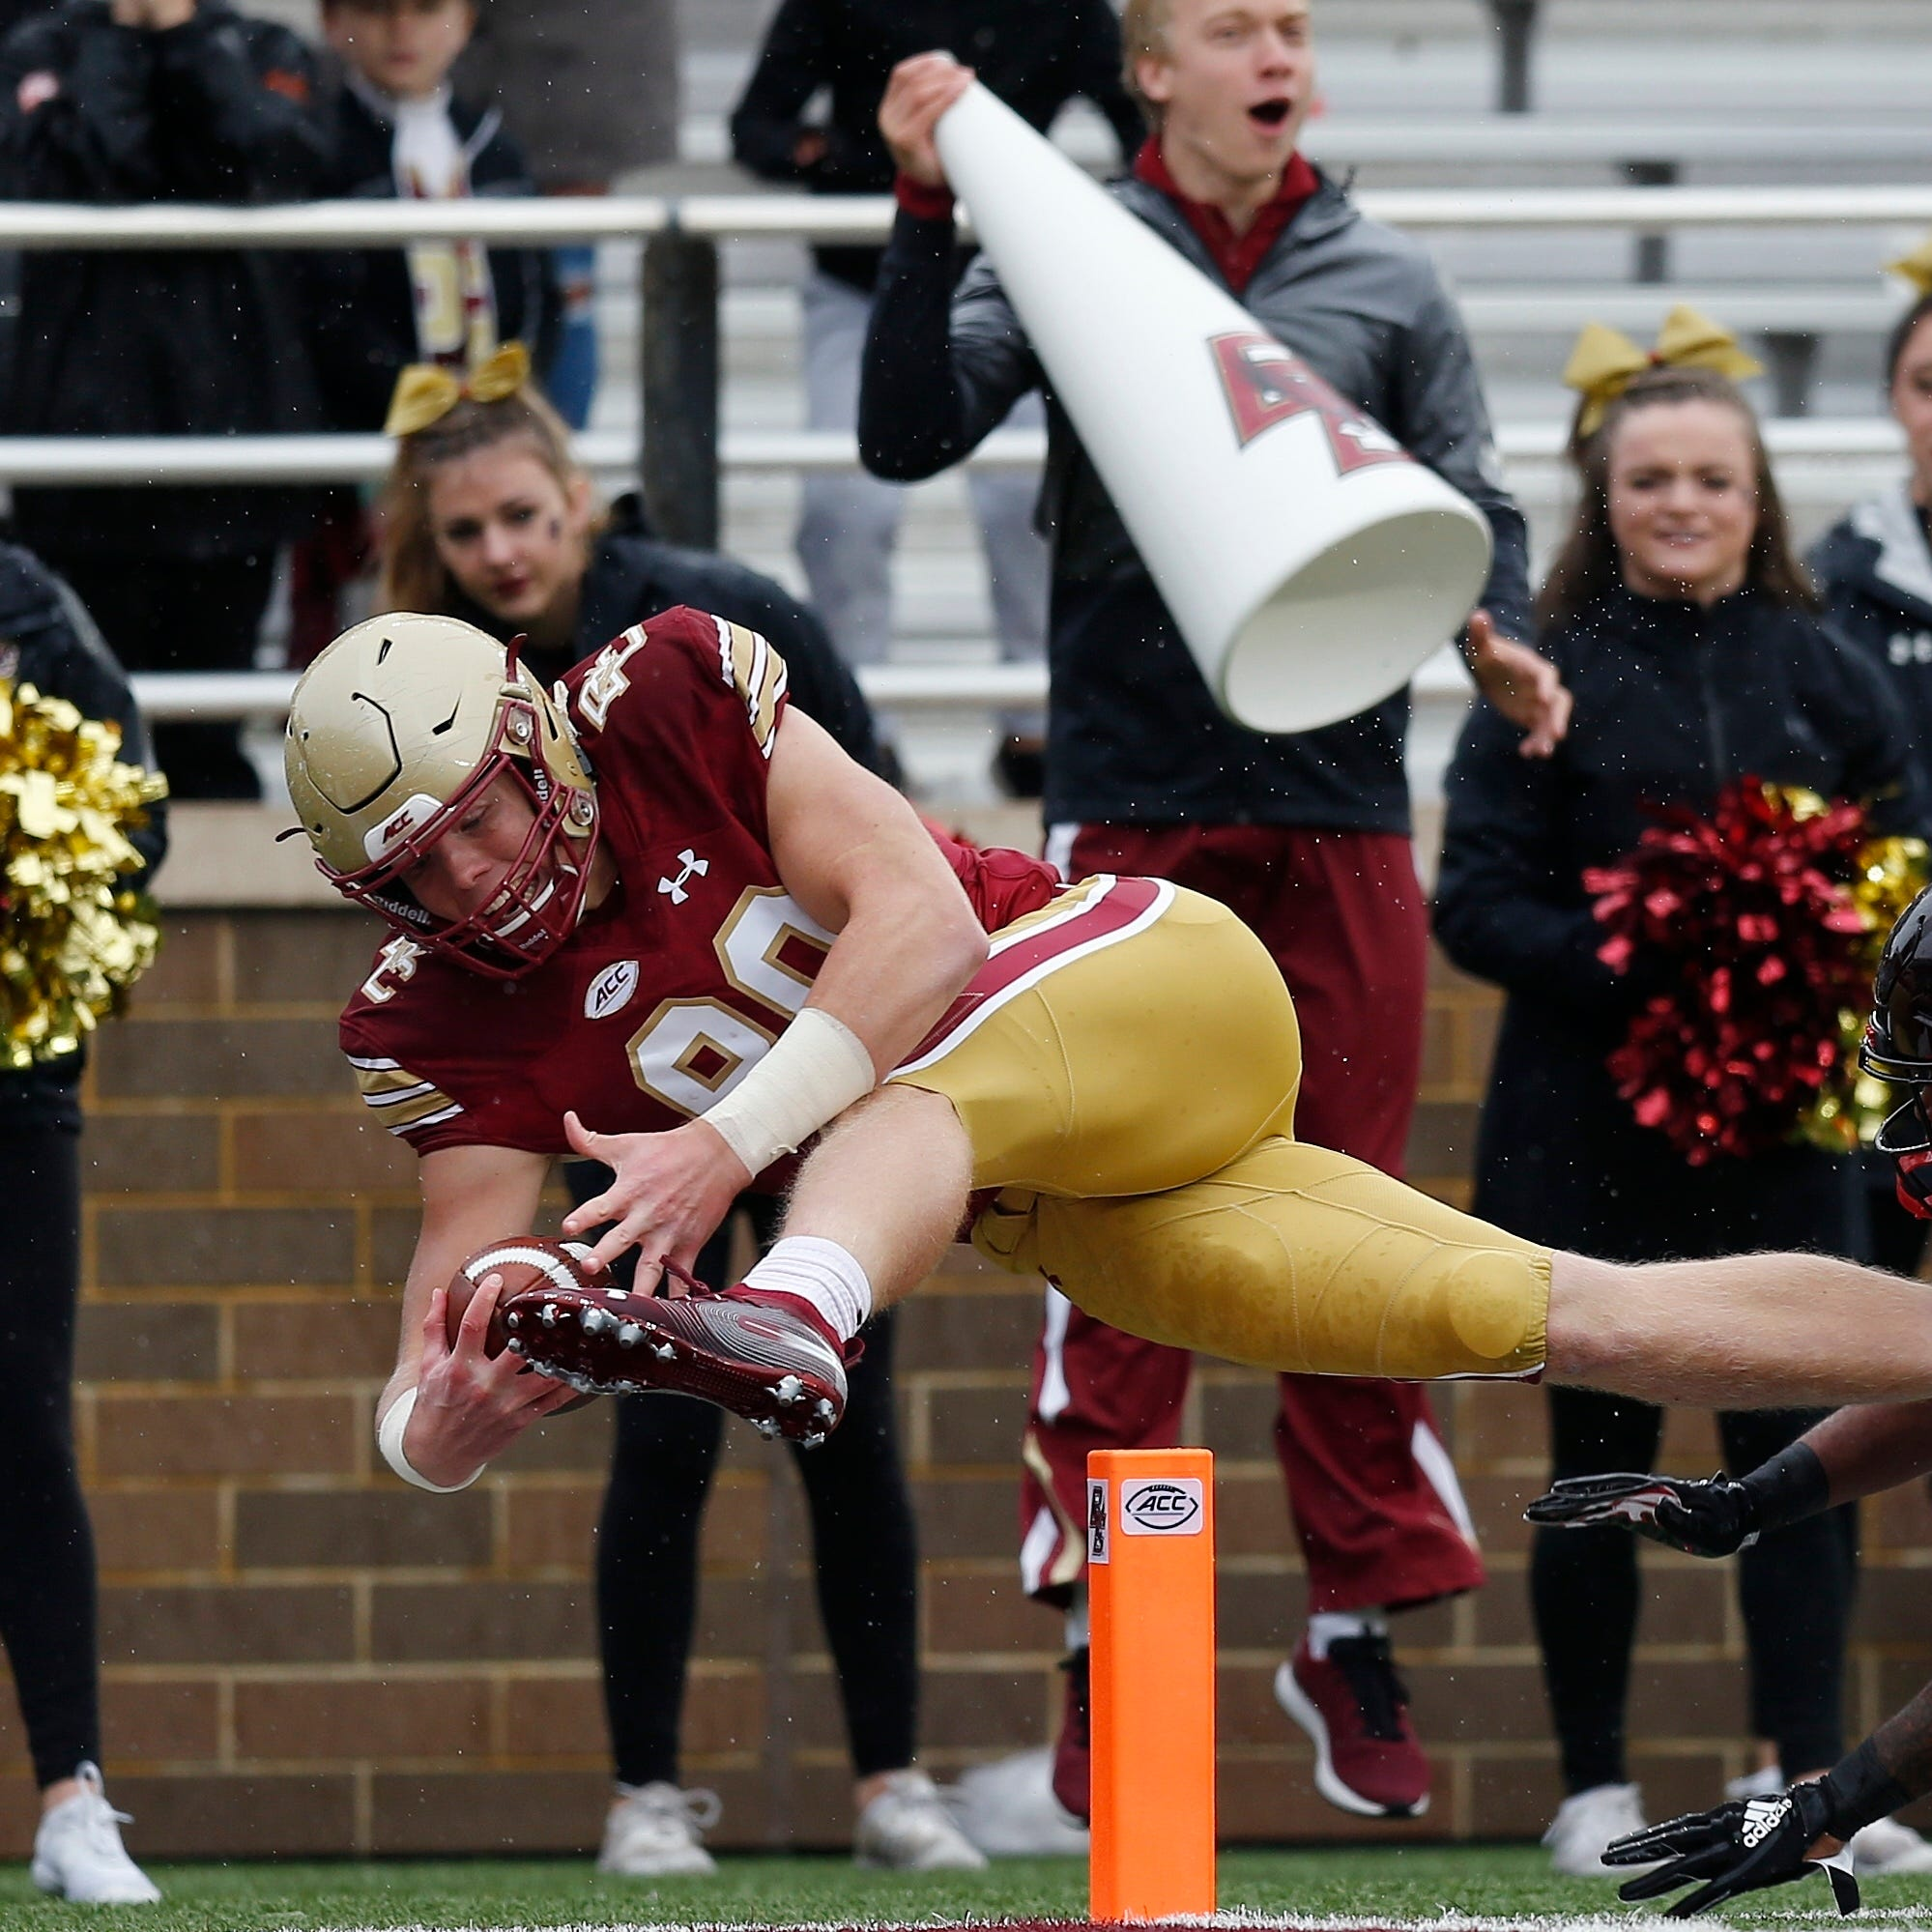 Analysis: Louisville done in by Boston College run game in loss